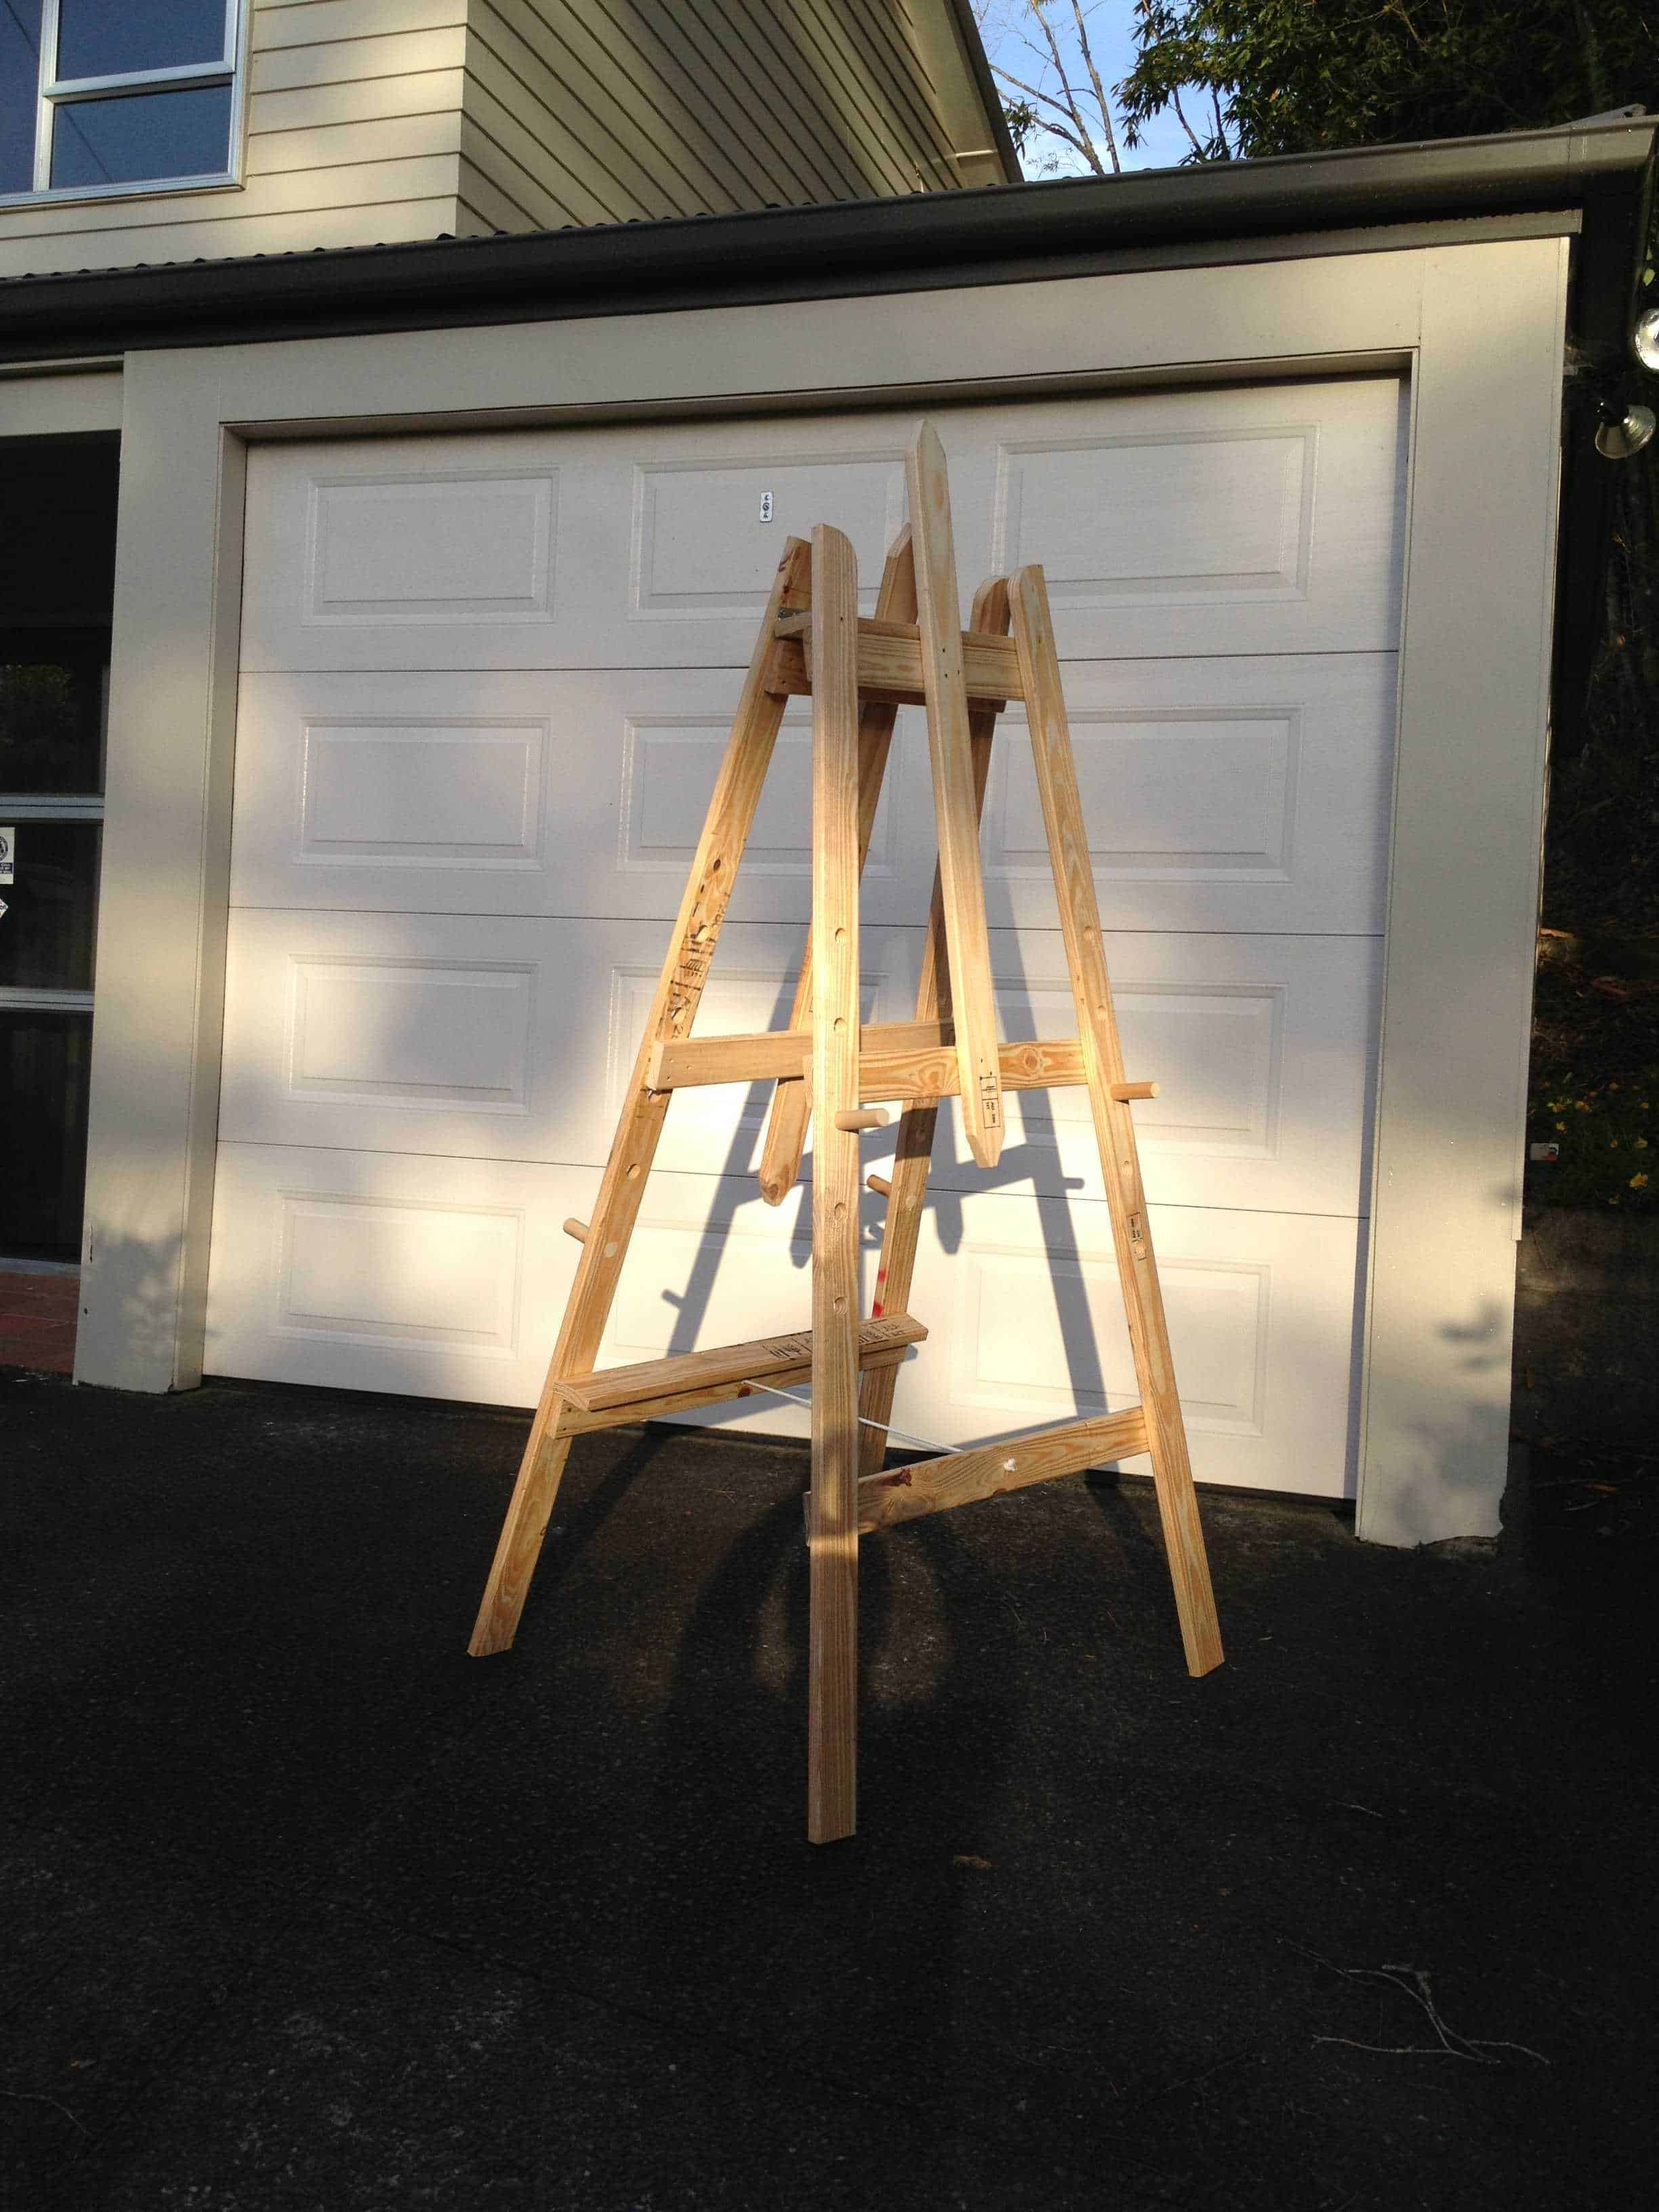 Art Easel Made From Repurposed Pallet Timber 1001 Pallets